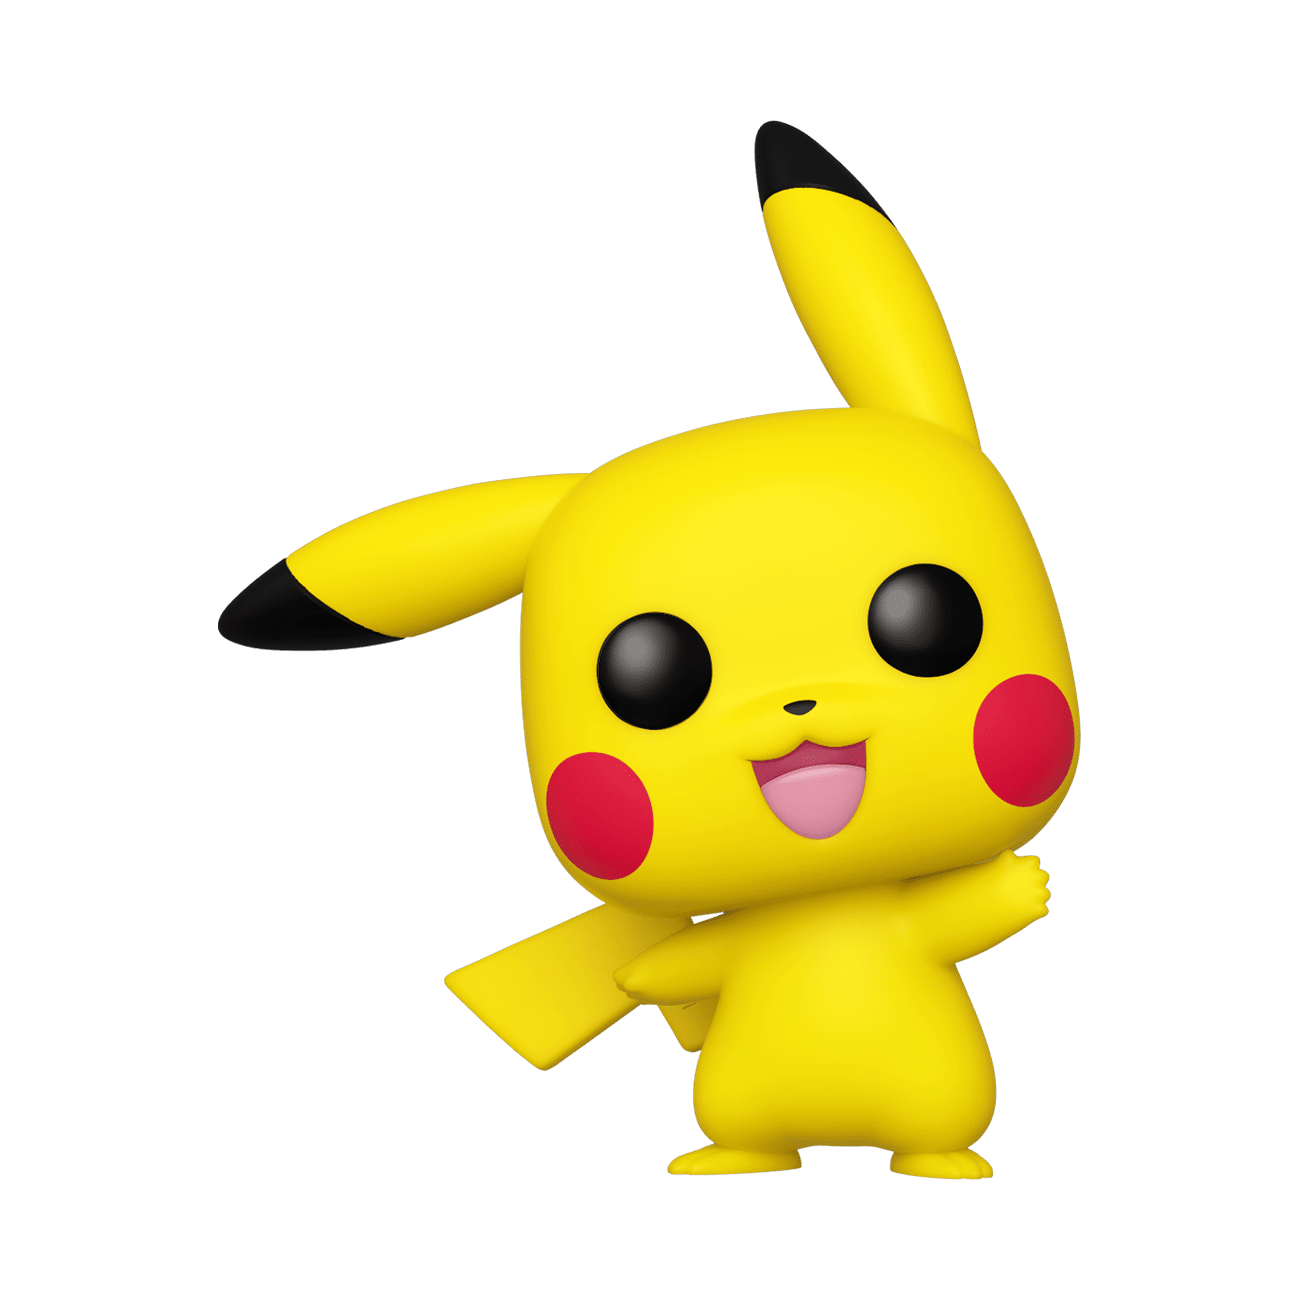 Pop! Pokémon: Pikachu